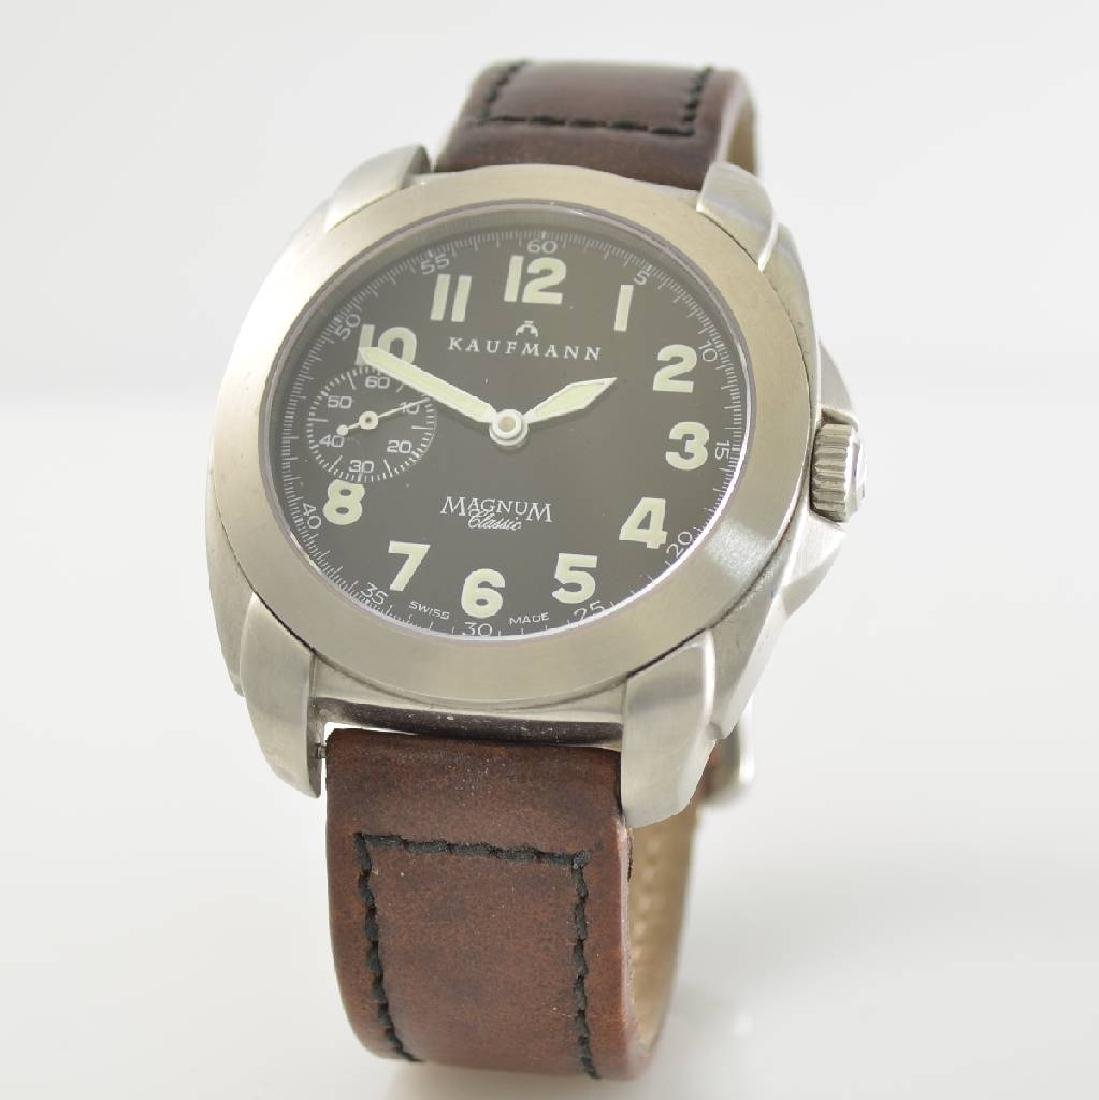 KAUFMANN manual wound gents wristwatch model Magnum - 3